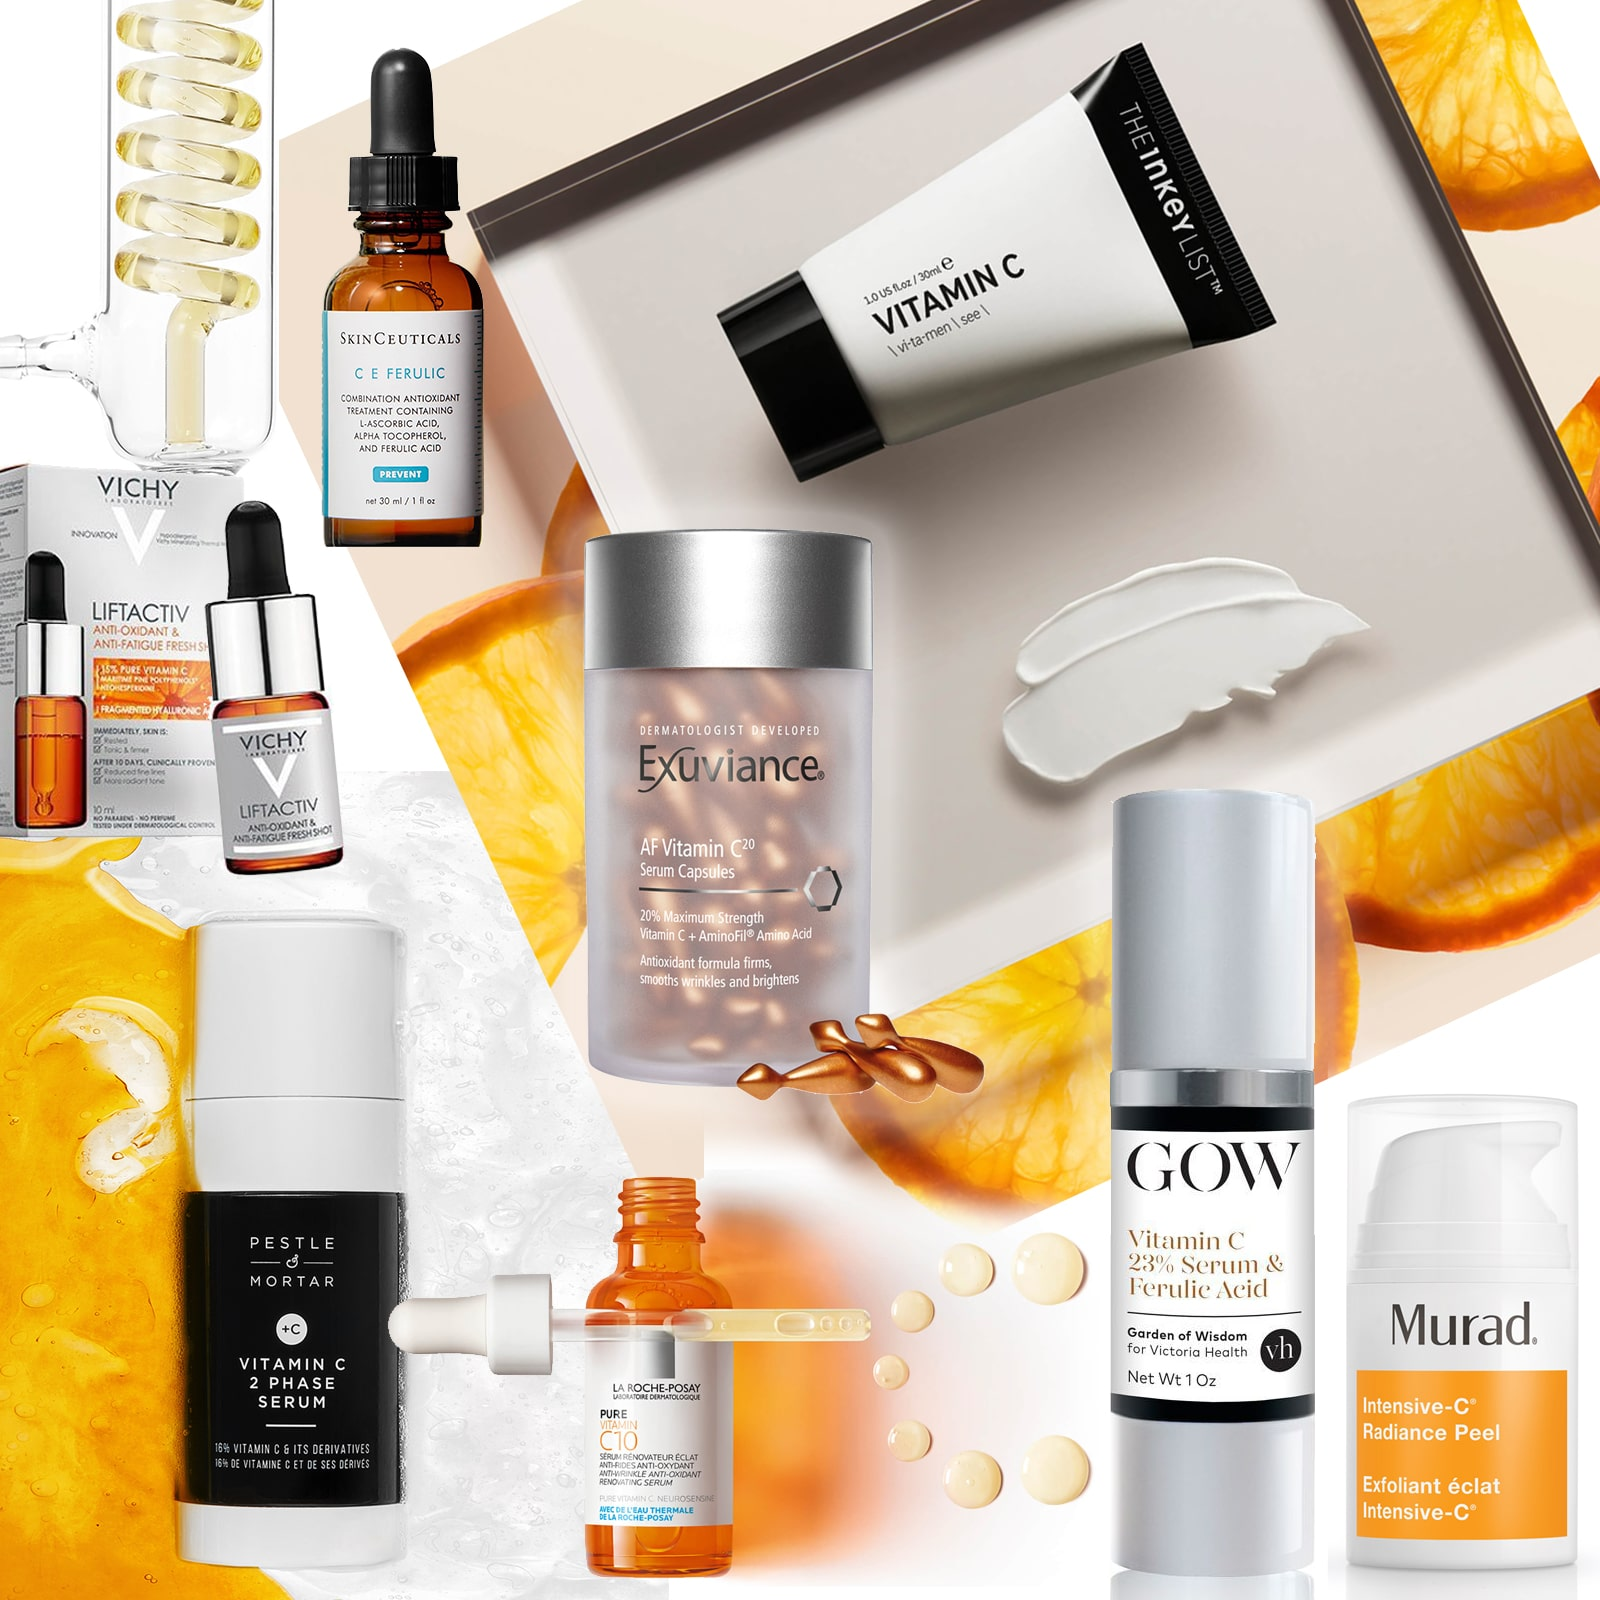 Vitamin C for brighter glowing skin